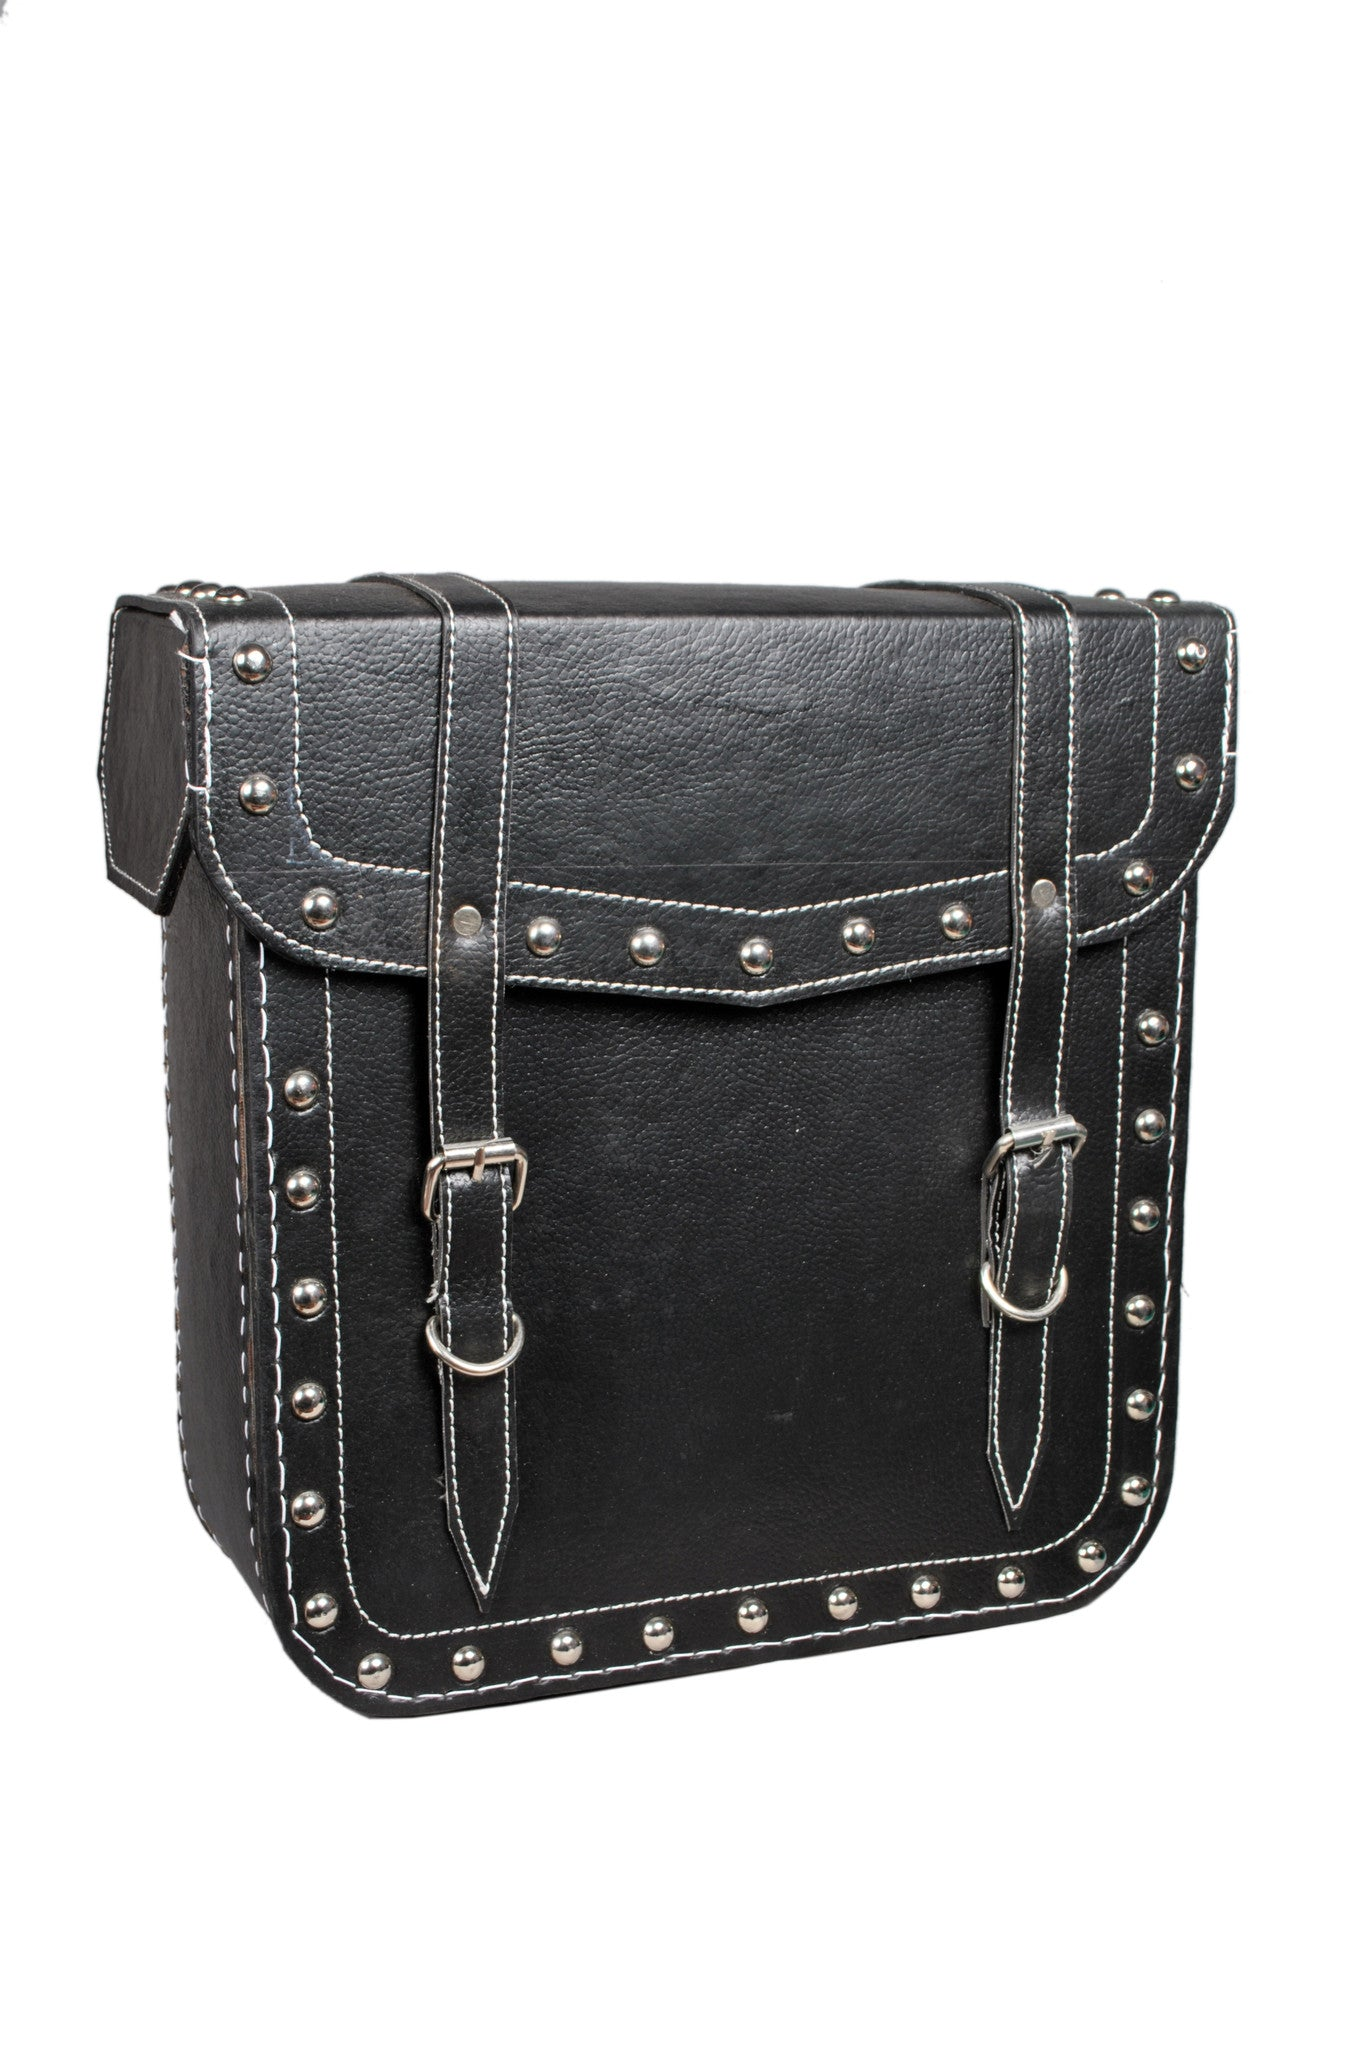 Black Studded Saddlebag Leather AFREZ-432